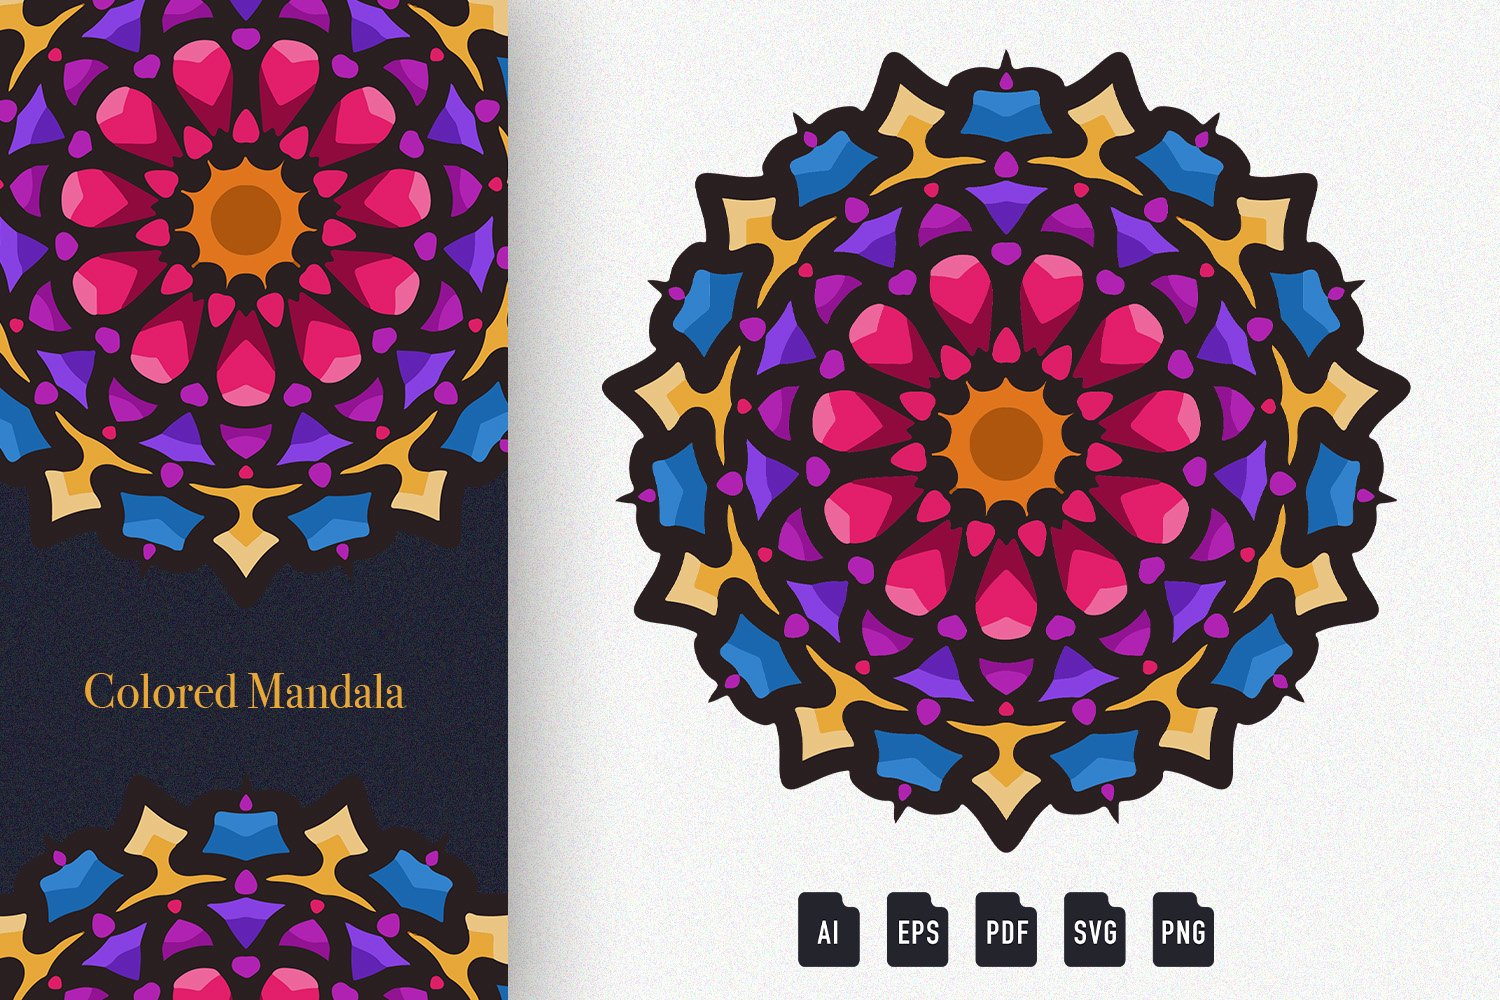 Colored Mandala Art 02 example image 1